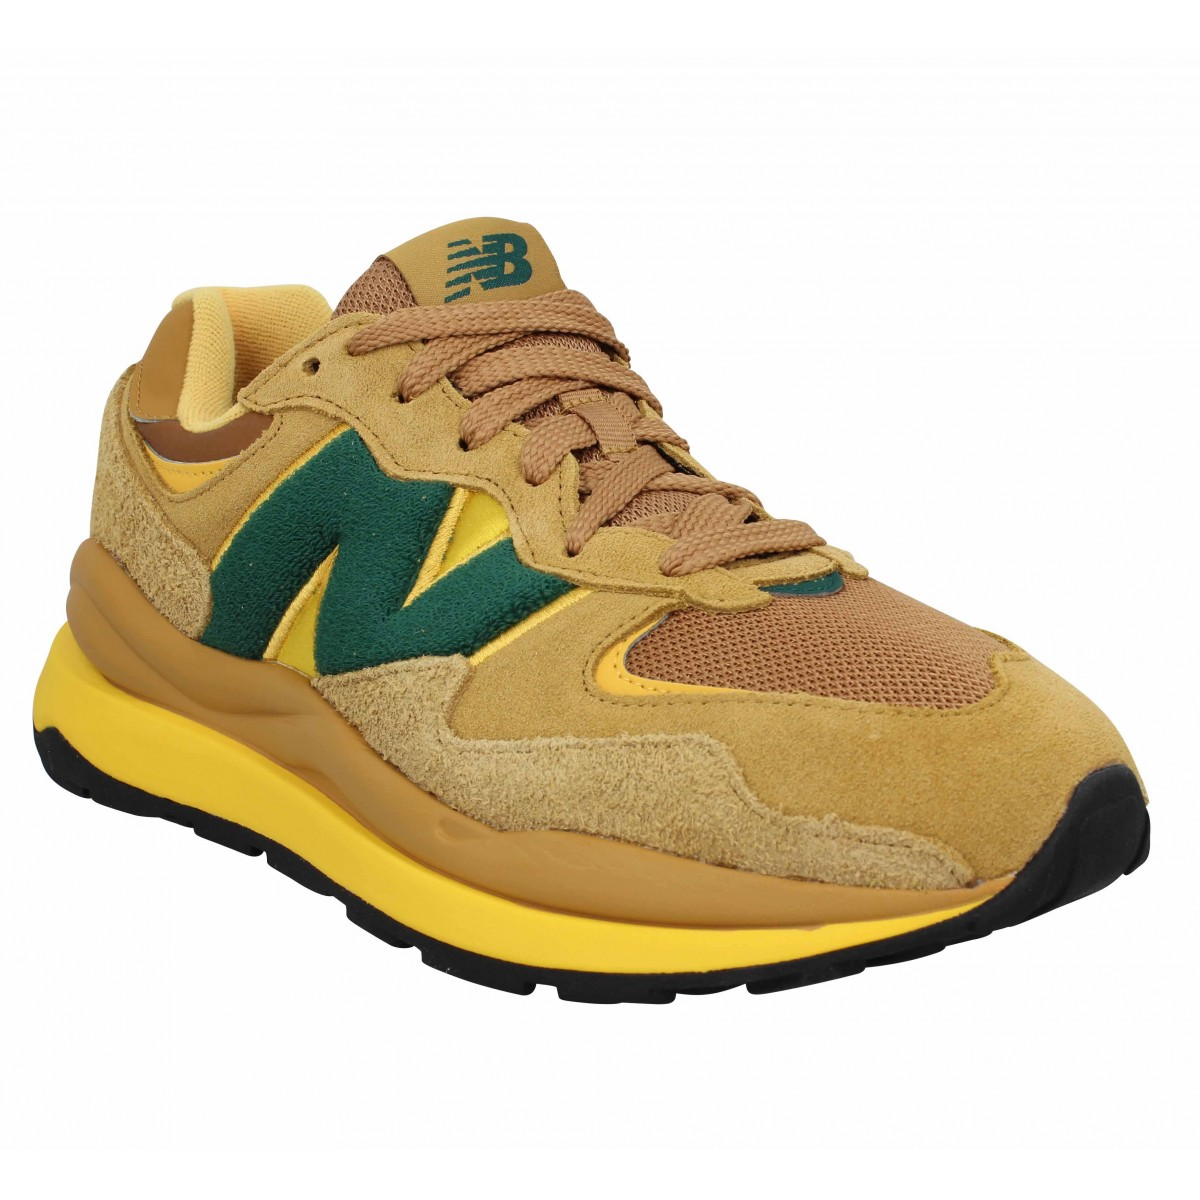 New Balance Homme 5740 Velours Toile...